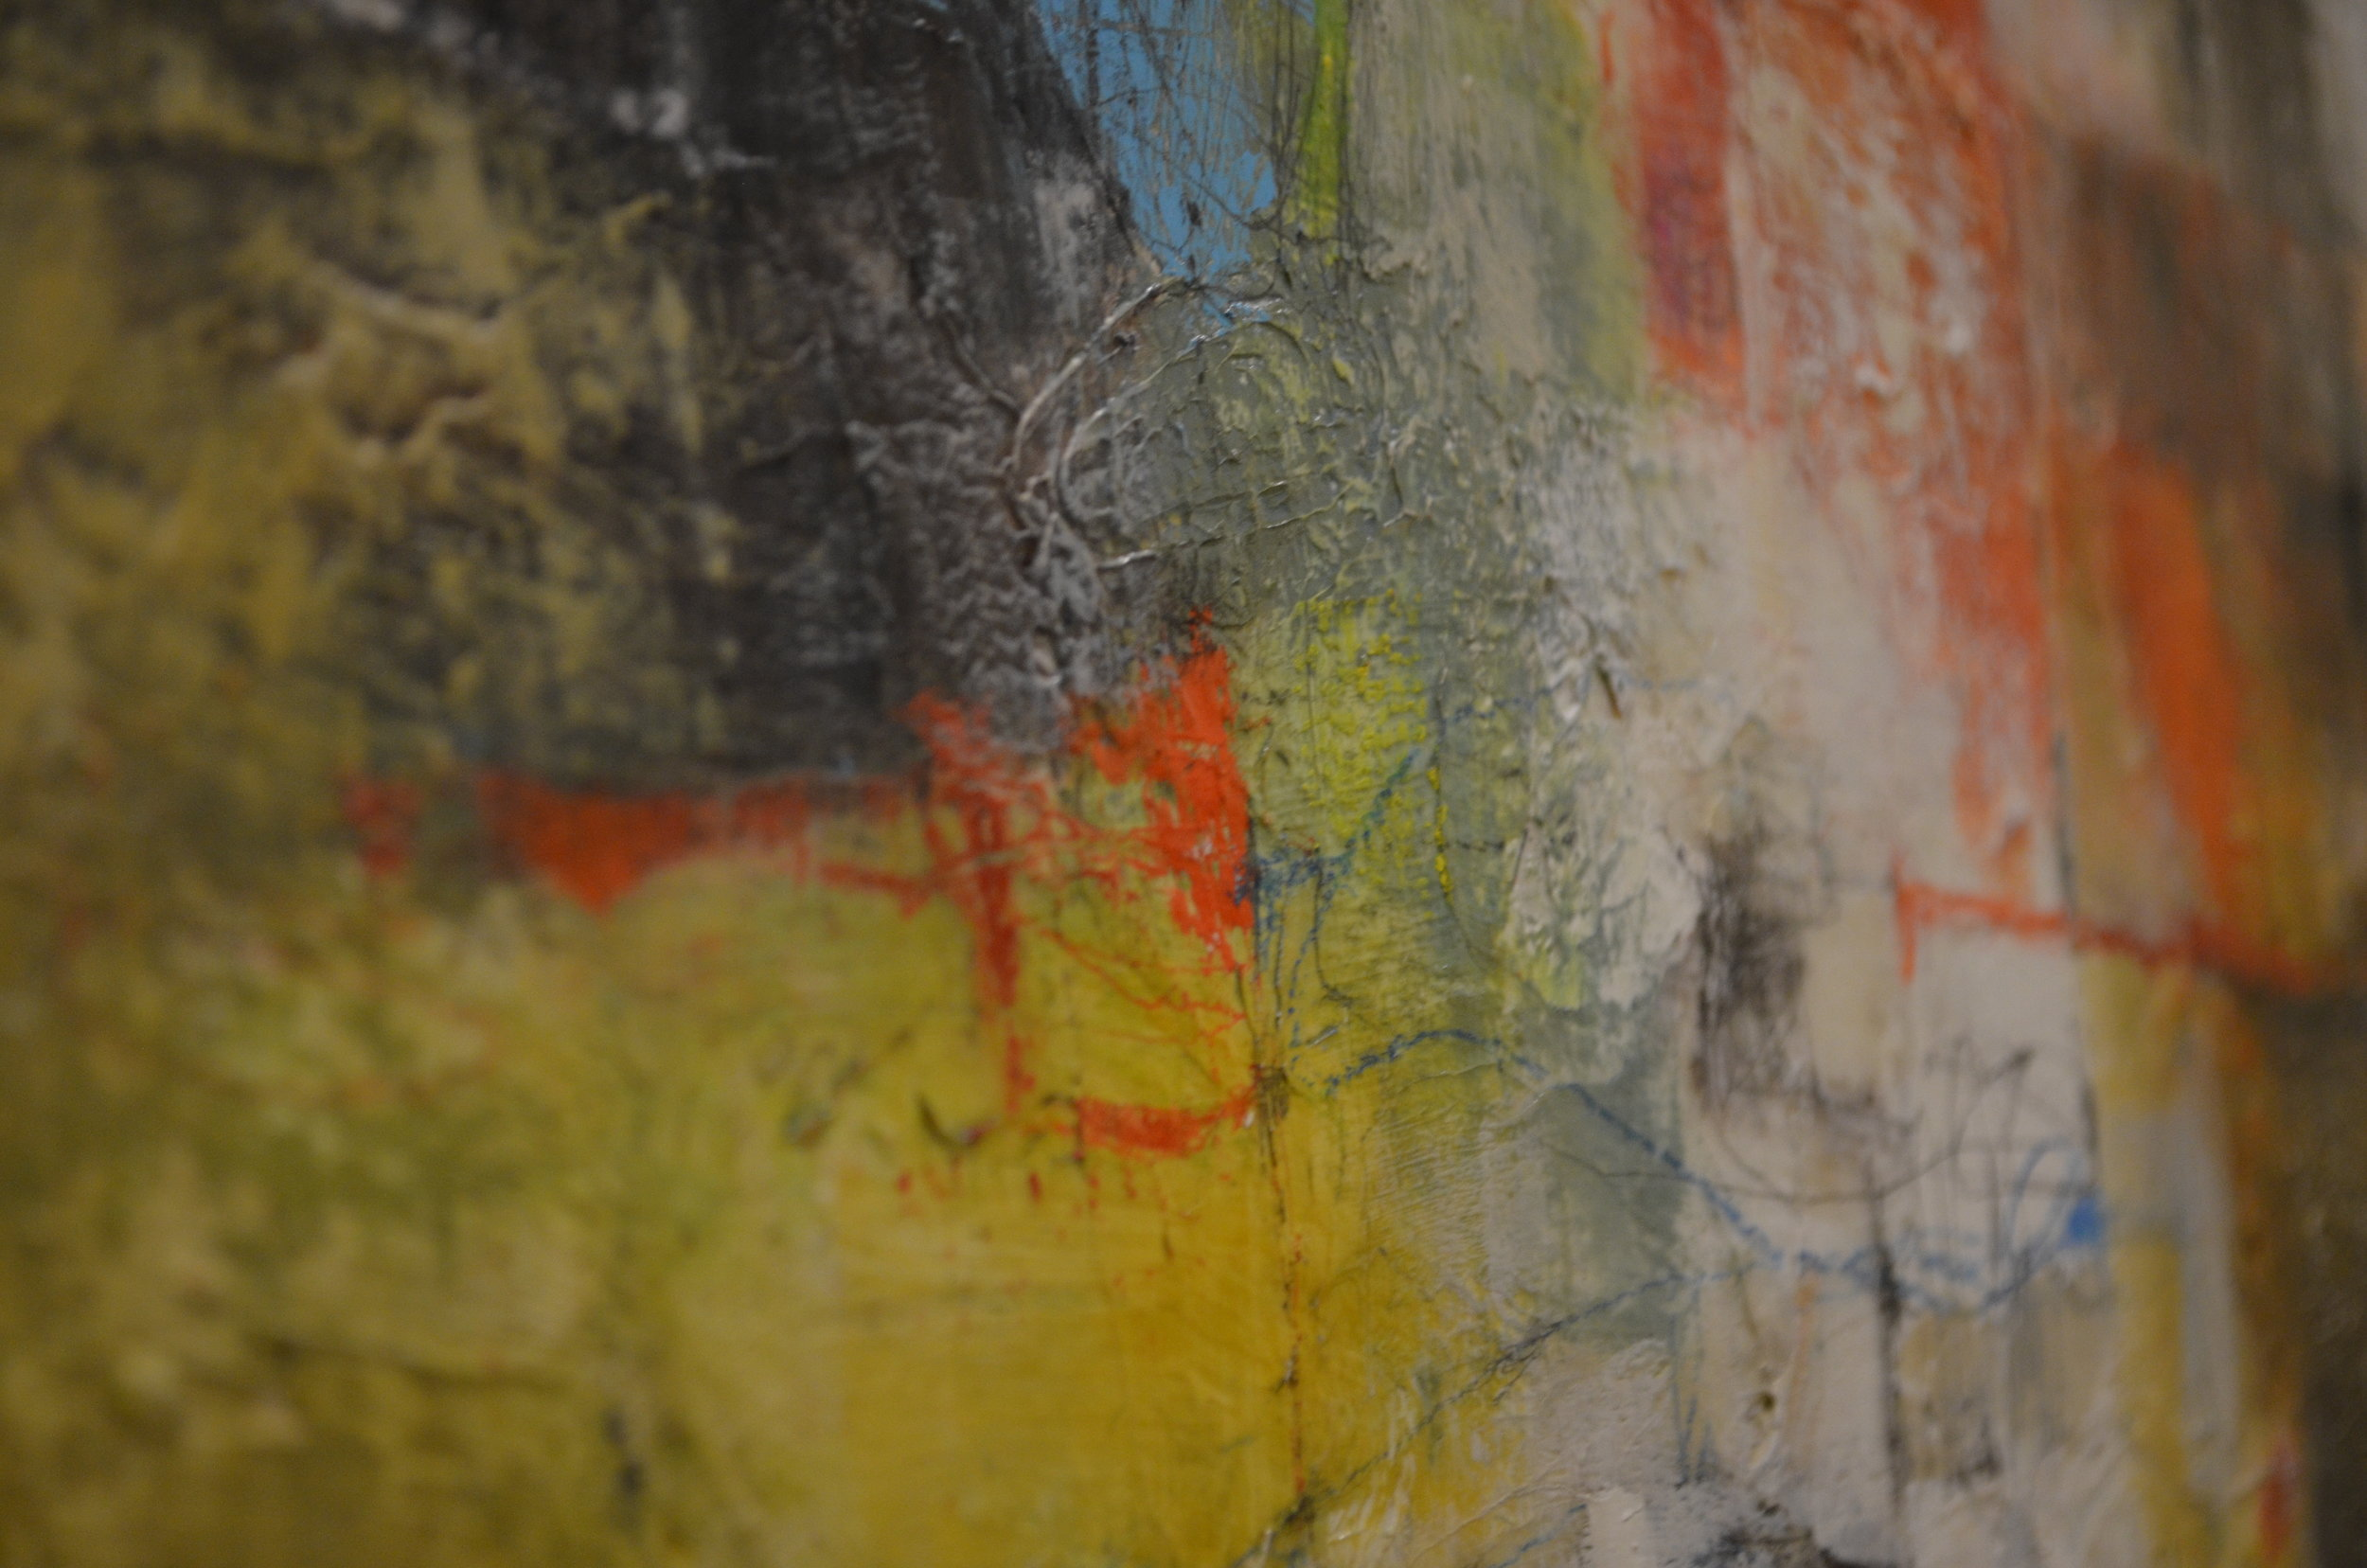 mixed media on canvas by tamar kander, door, additional images showing texture